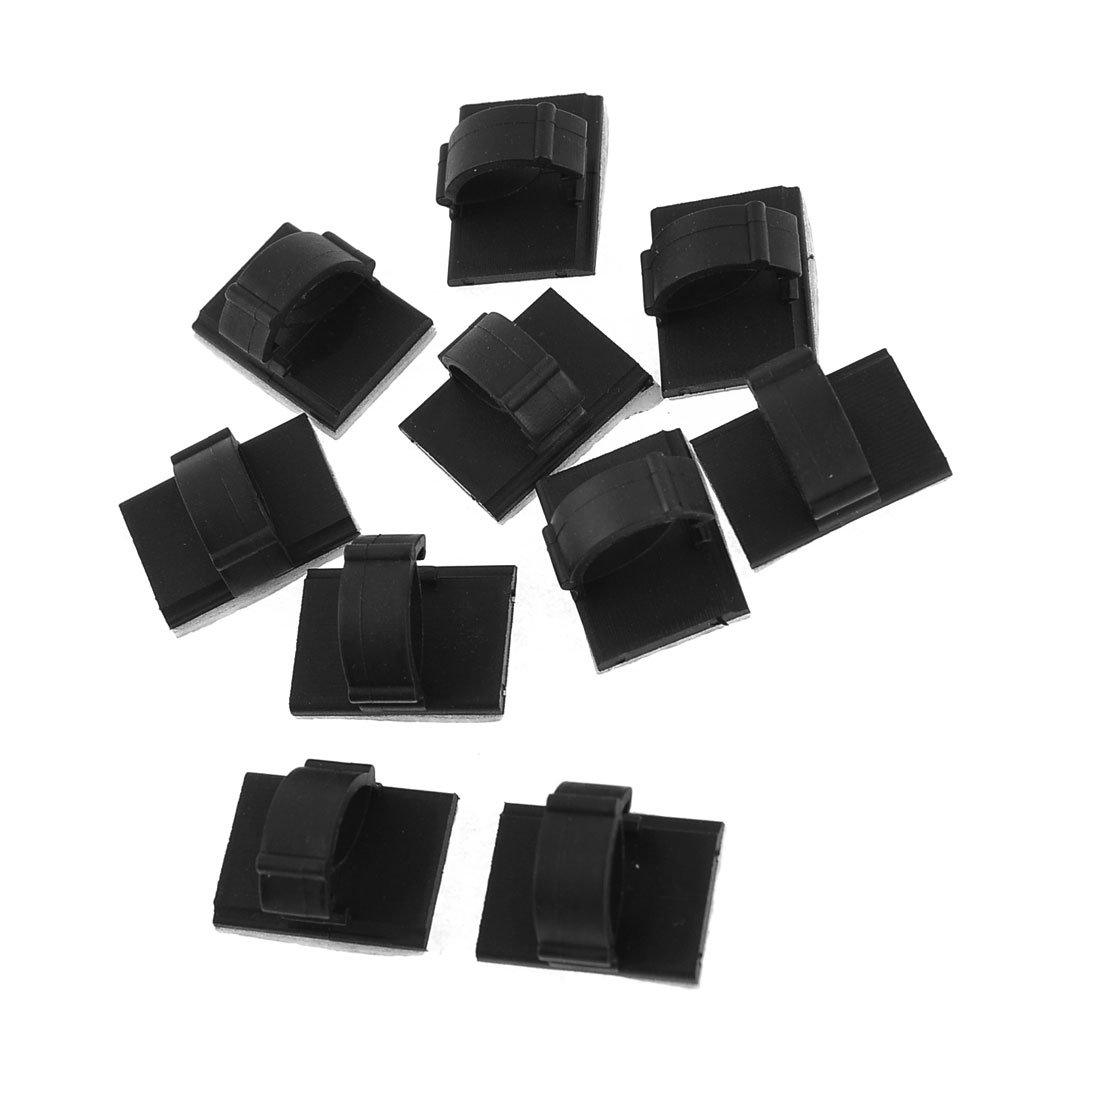 10 Pcs Rectangle Self-adhesive 10mm Cable Tie Mount Clips Black